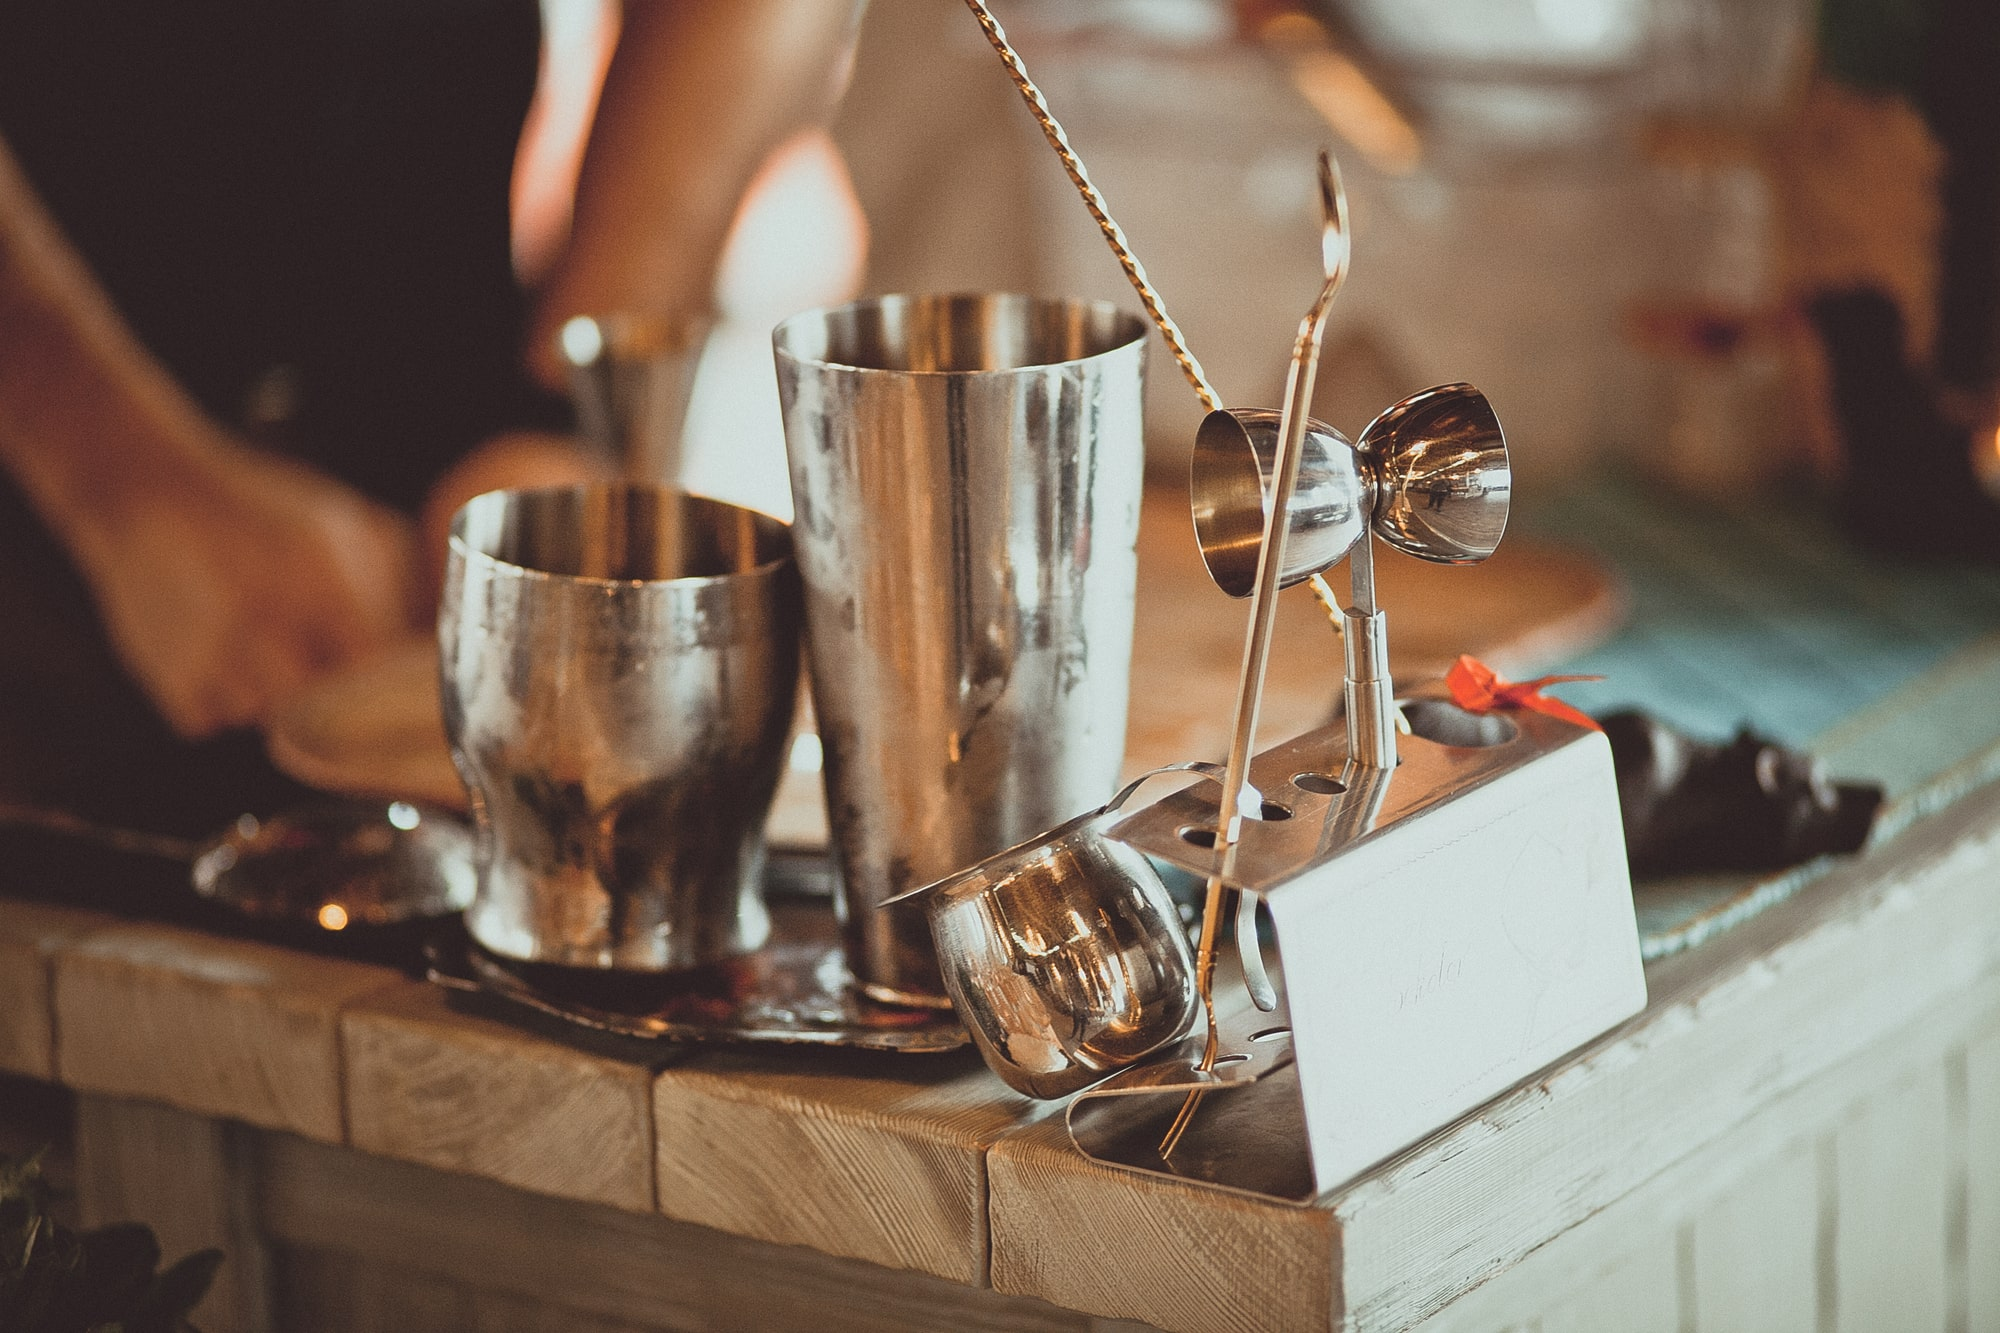 Bartender equipment cocktail shaker and spoons on the bar